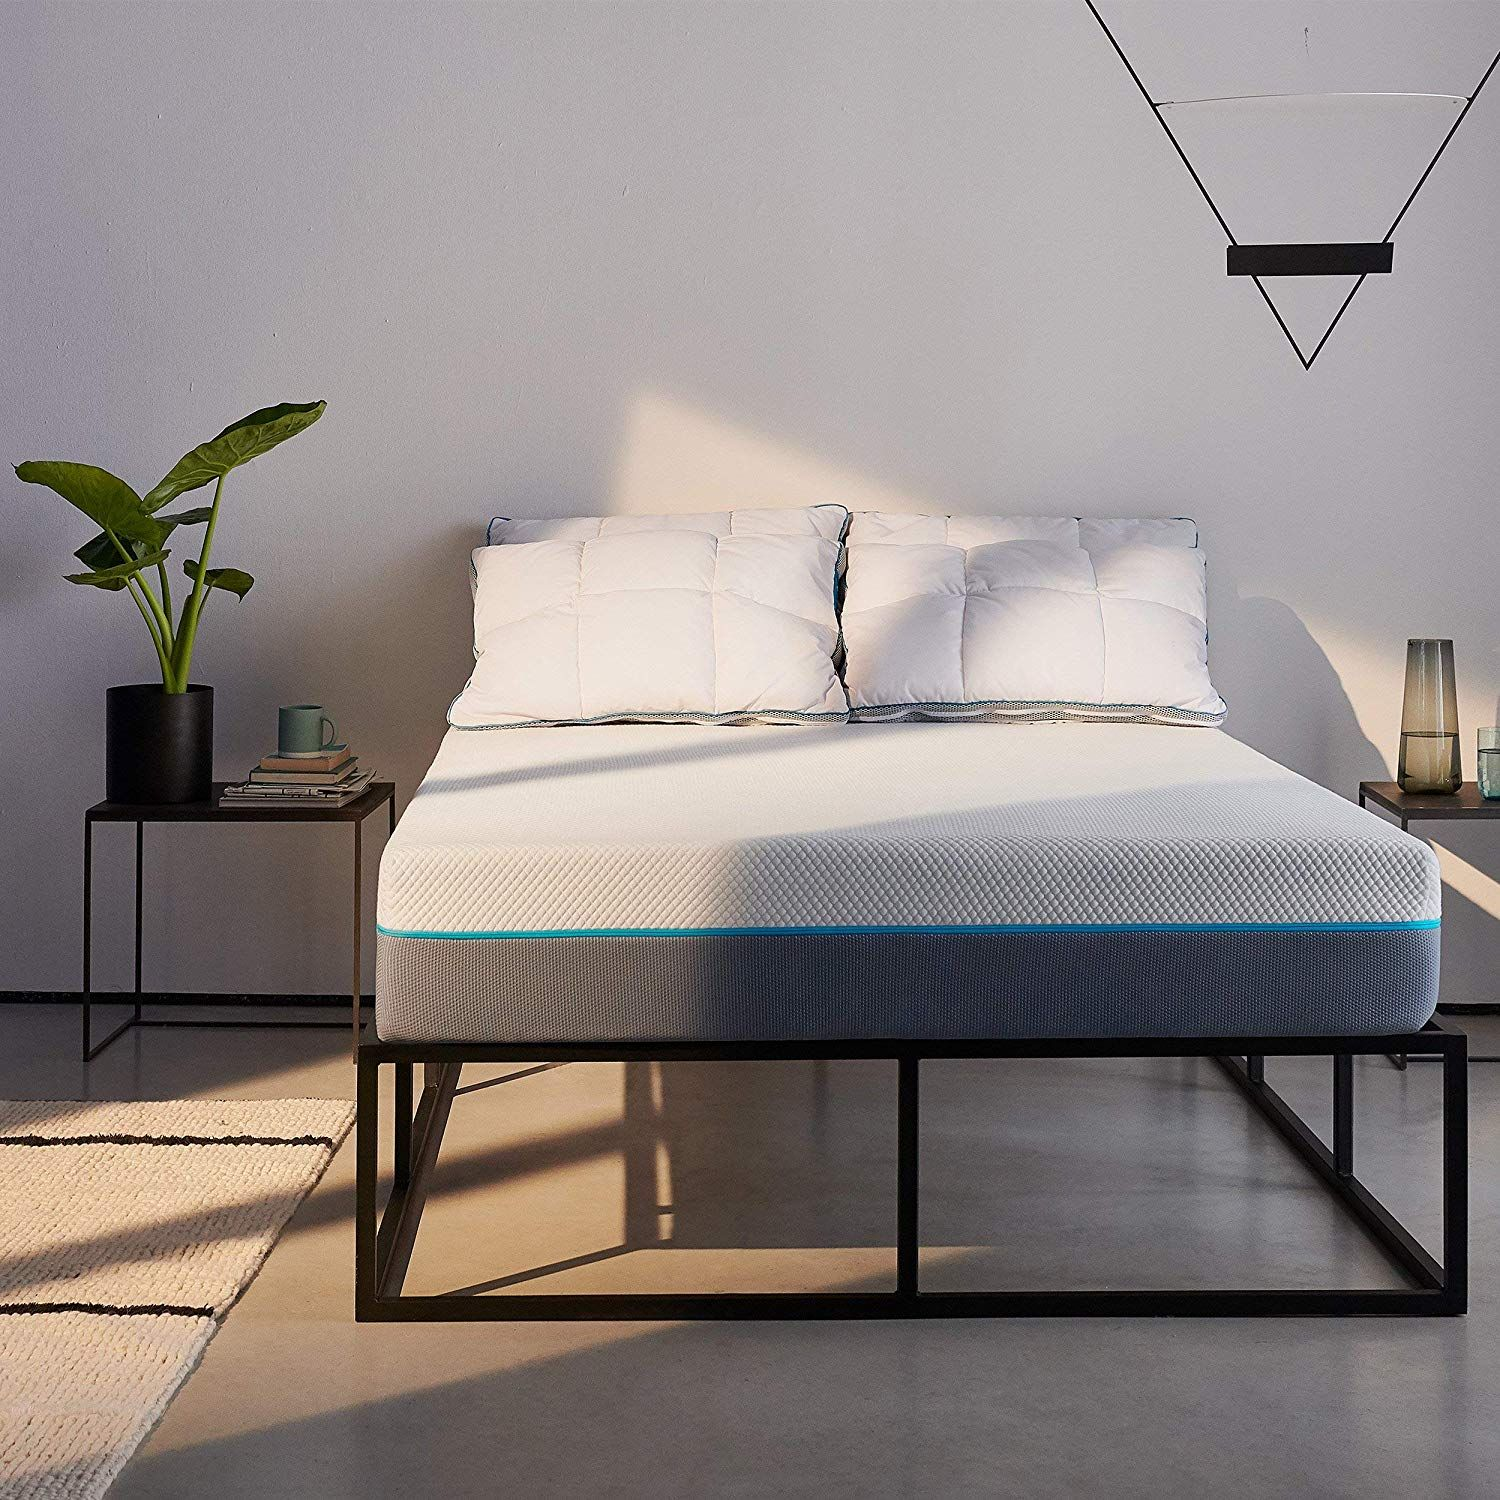 Save 35% on the Simba hybrid mattress on Amazon today!